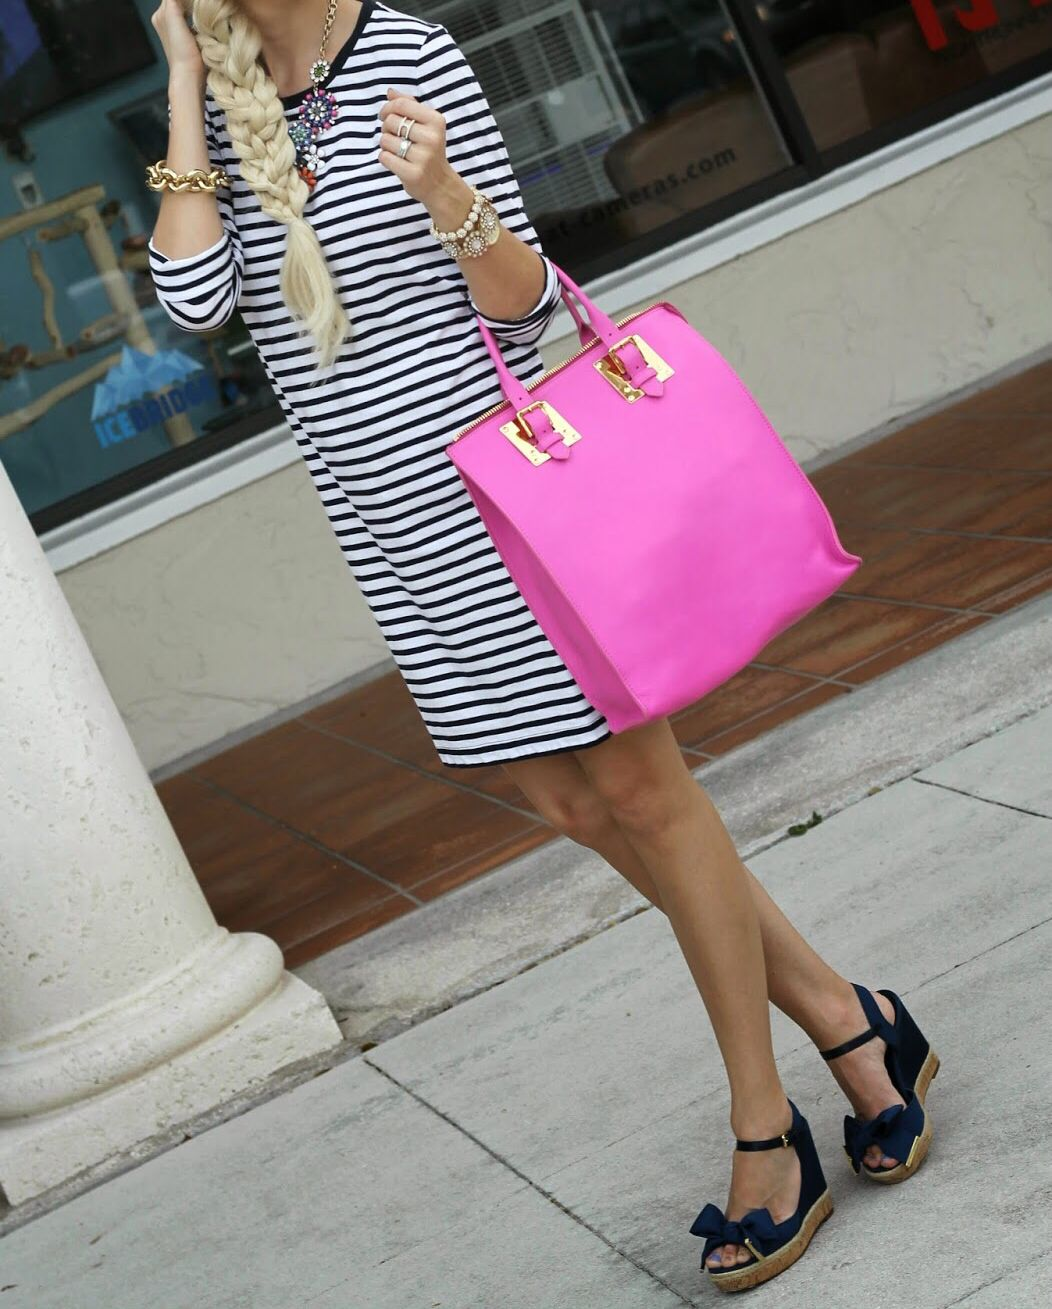 In love with this dress, bag, and shoes.